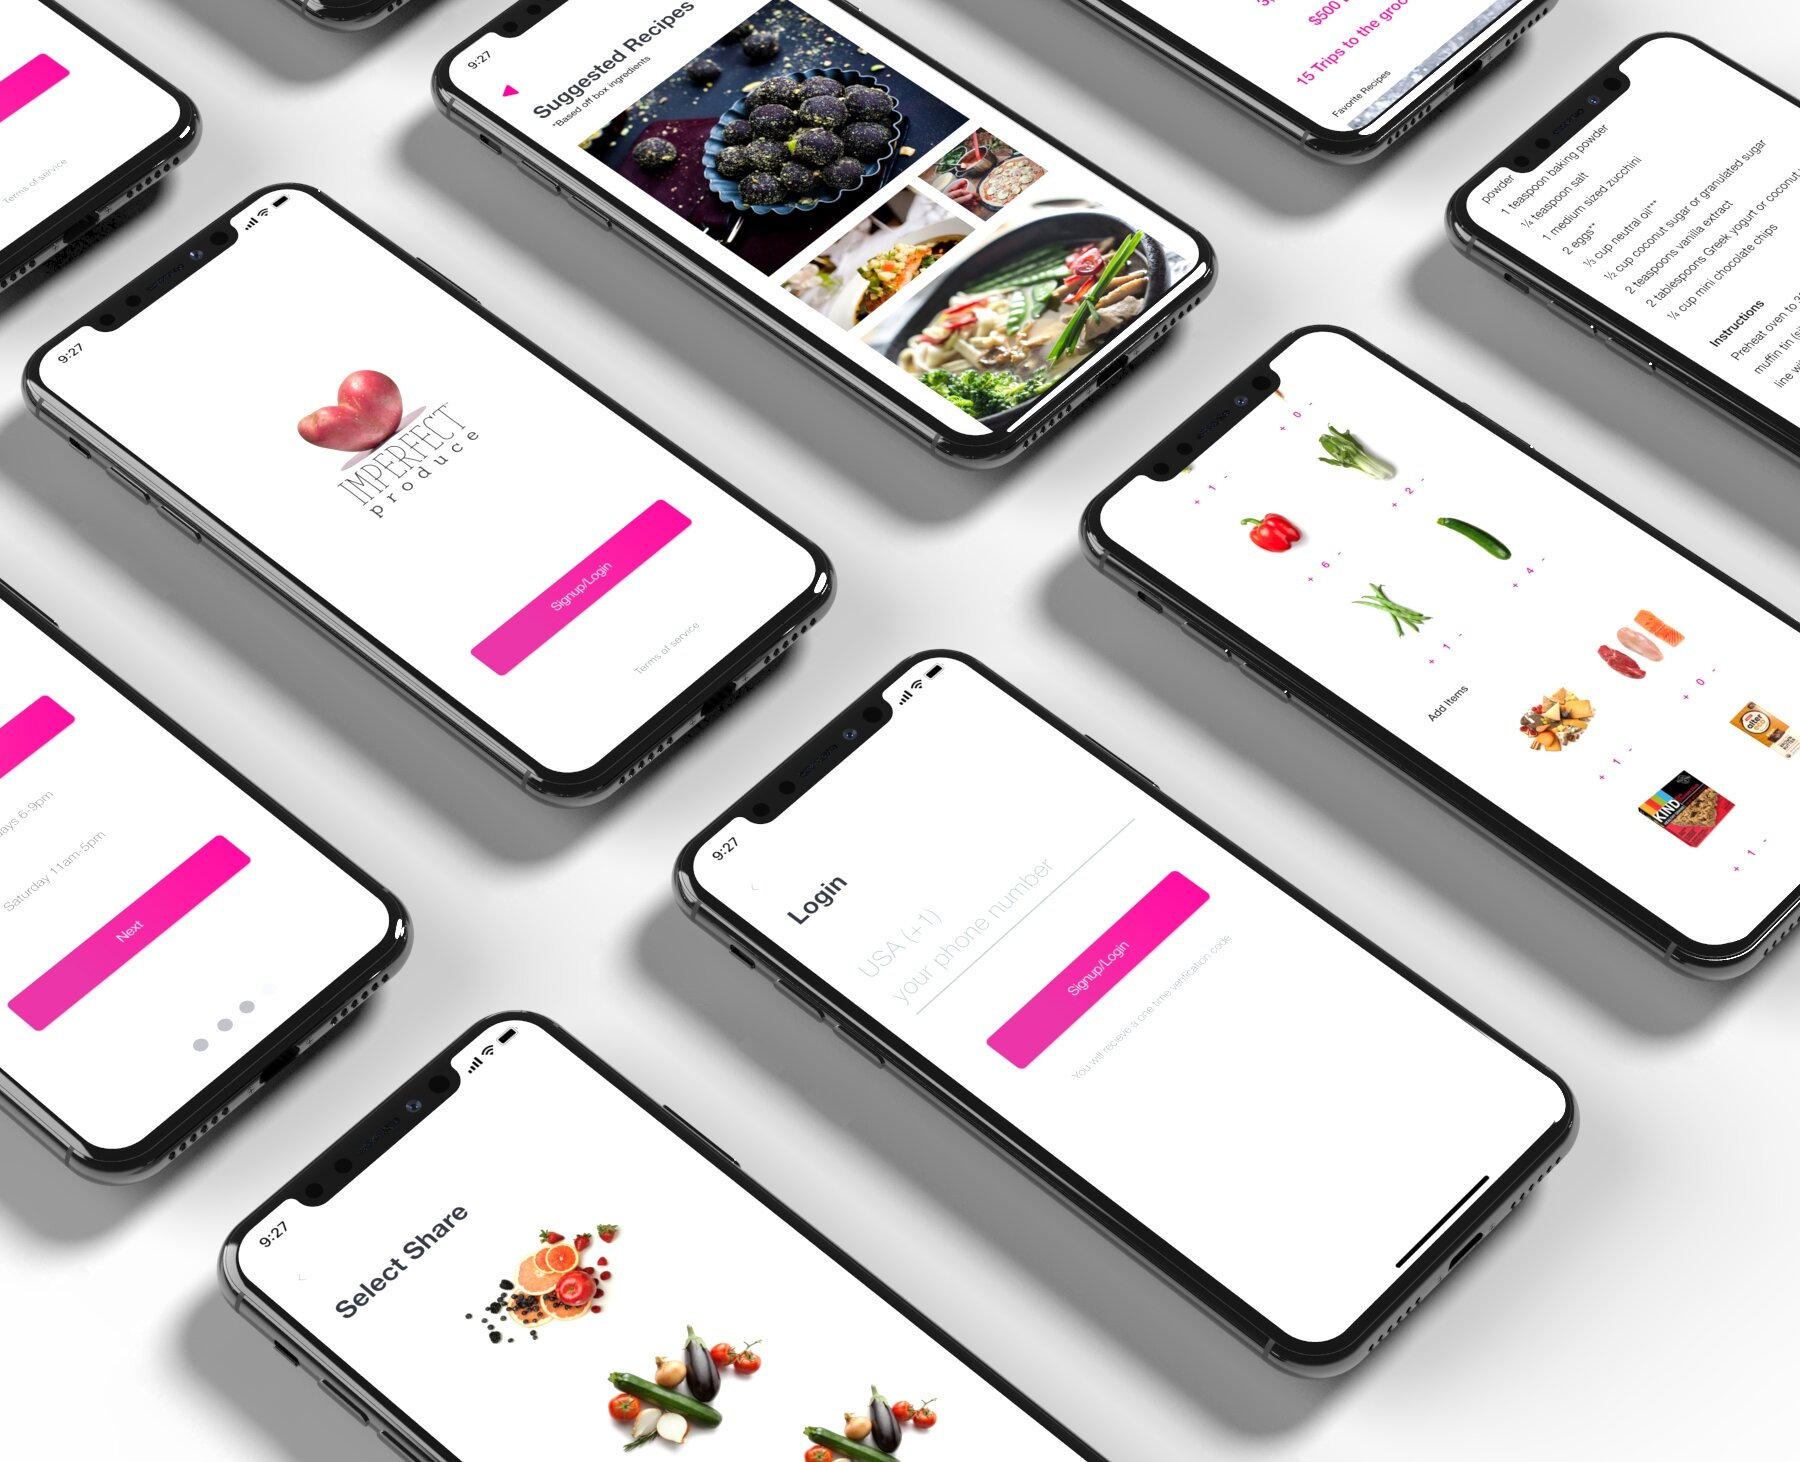 Imperfect Produce - A short UX project exploring a mobile platform for Imperfect produce